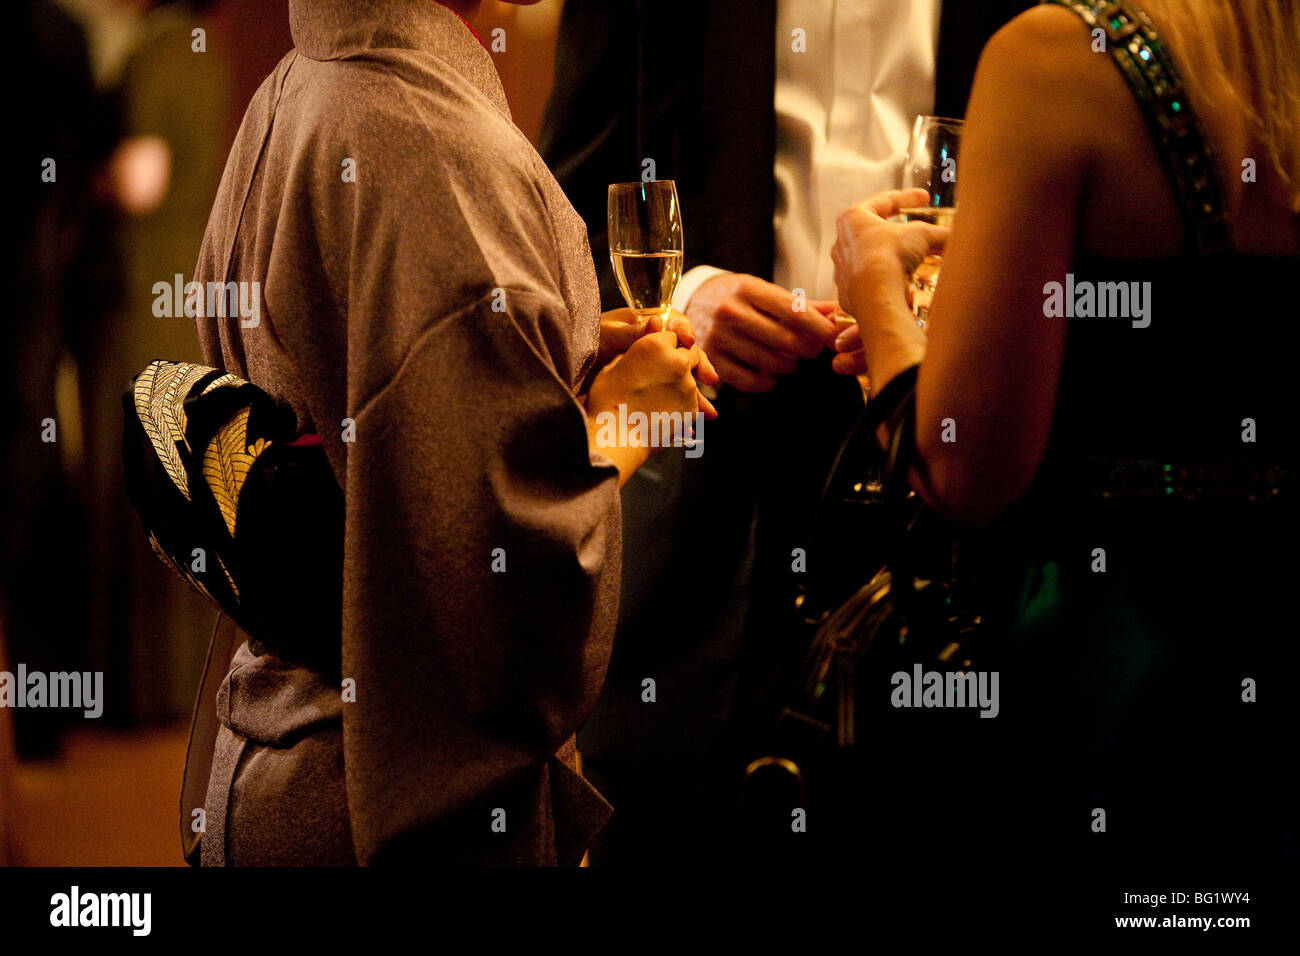 Japanese woman in kimono drinking champagne with Woman in Western style dress, and man in black tie.. - Stock Image